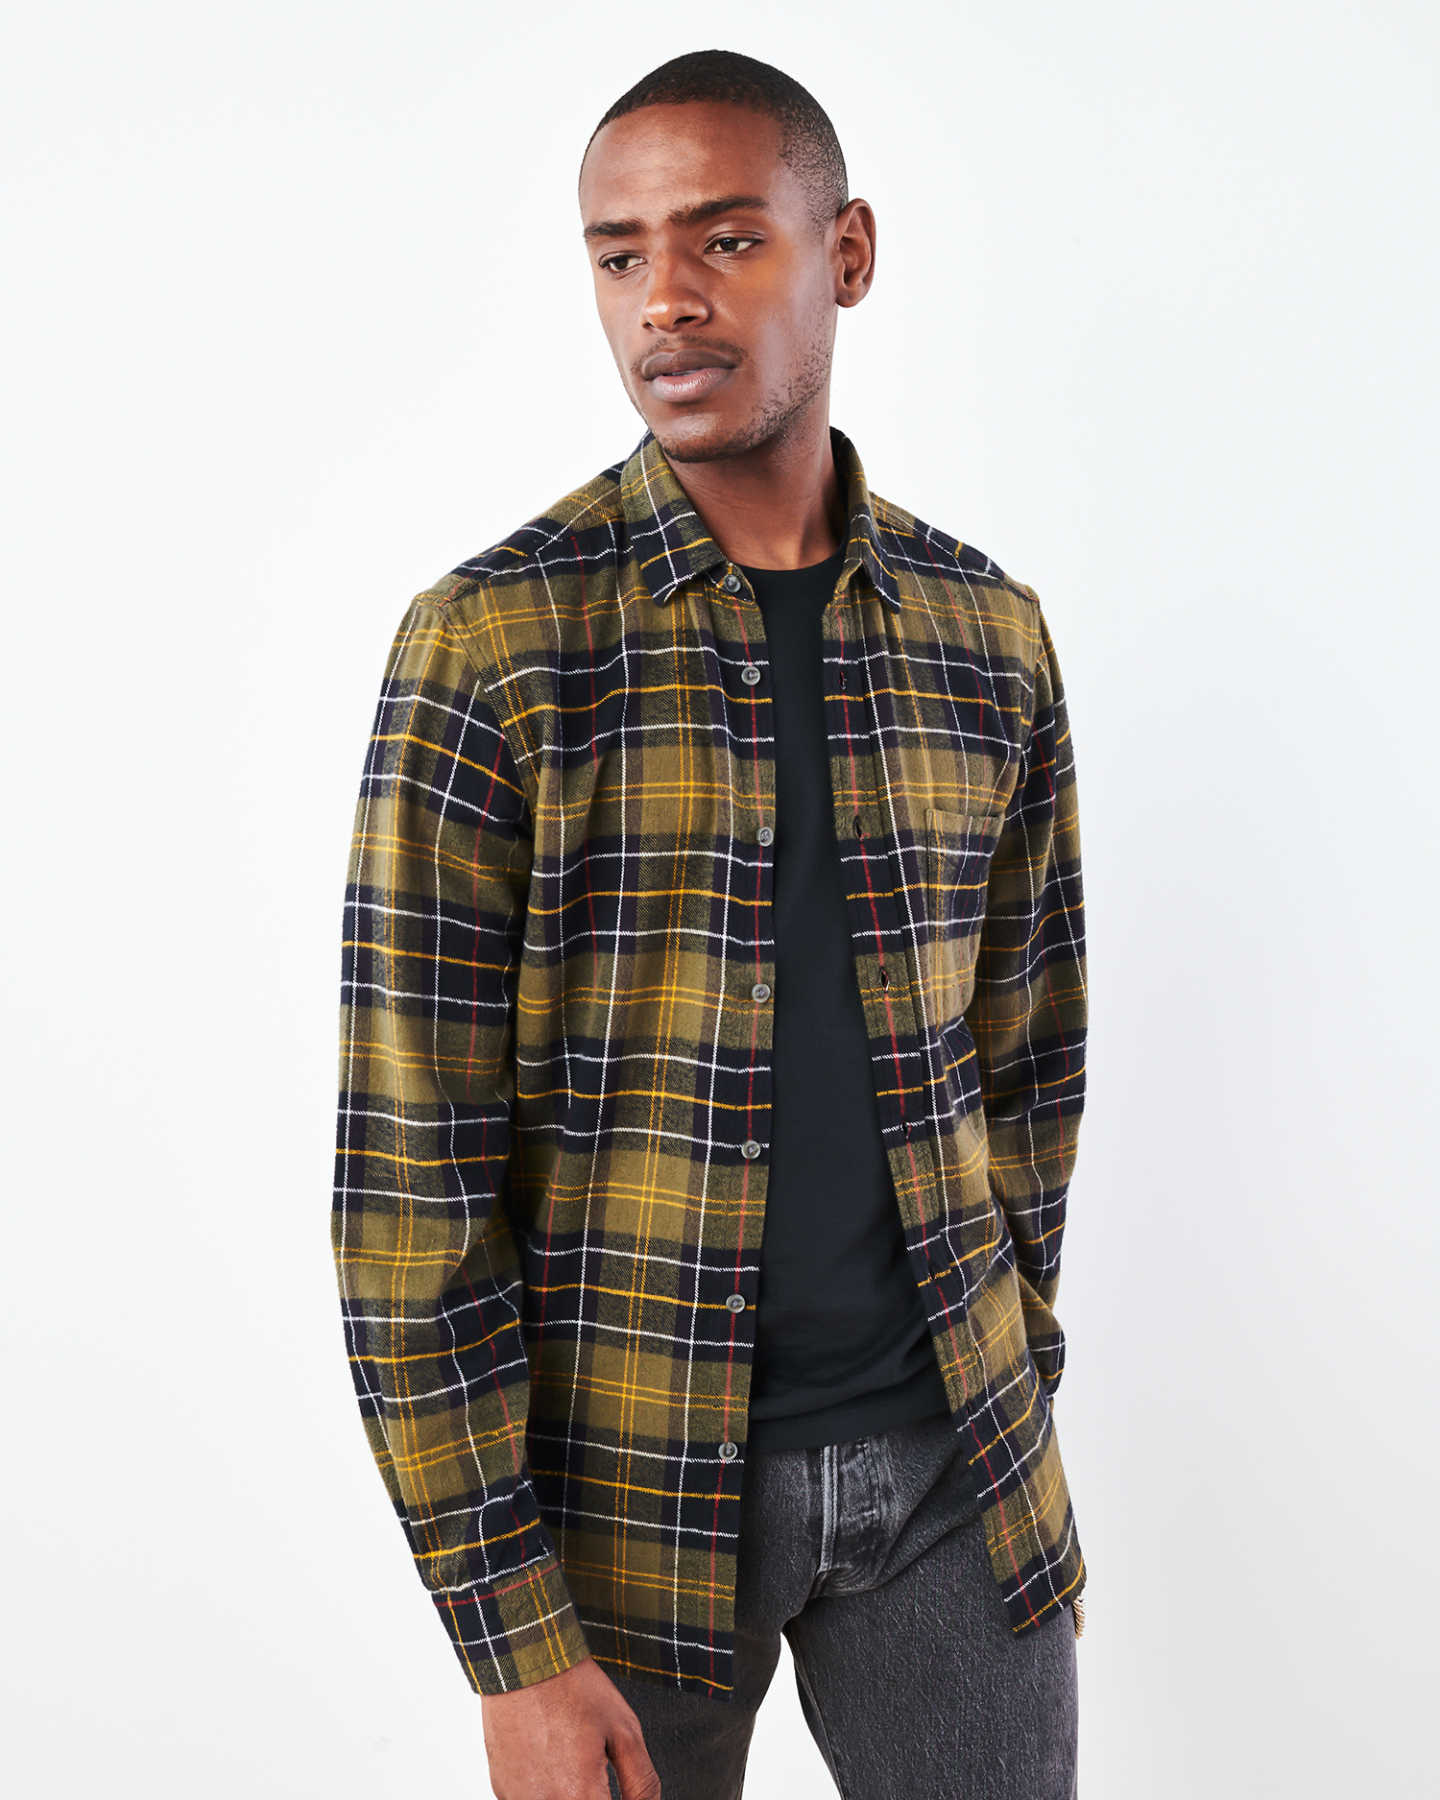 Pair With - Soft Brushed Plaid Flannel Shirt - Olive/Black